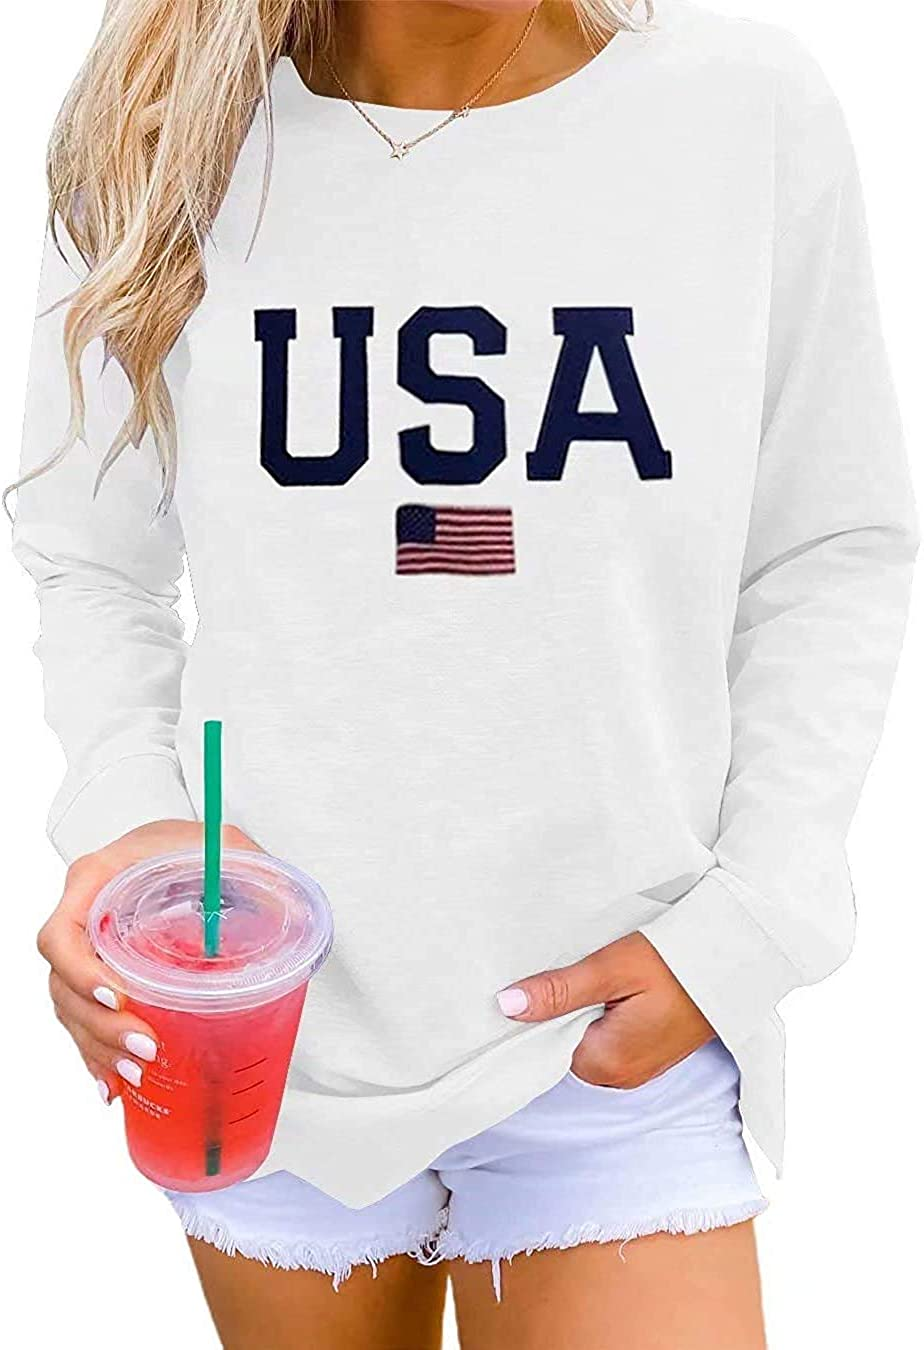 Dressmine Womens Casual Long Sleeve Graphic Tee Shirts Crew Neck Sweatshirts Pullover Tops for Women